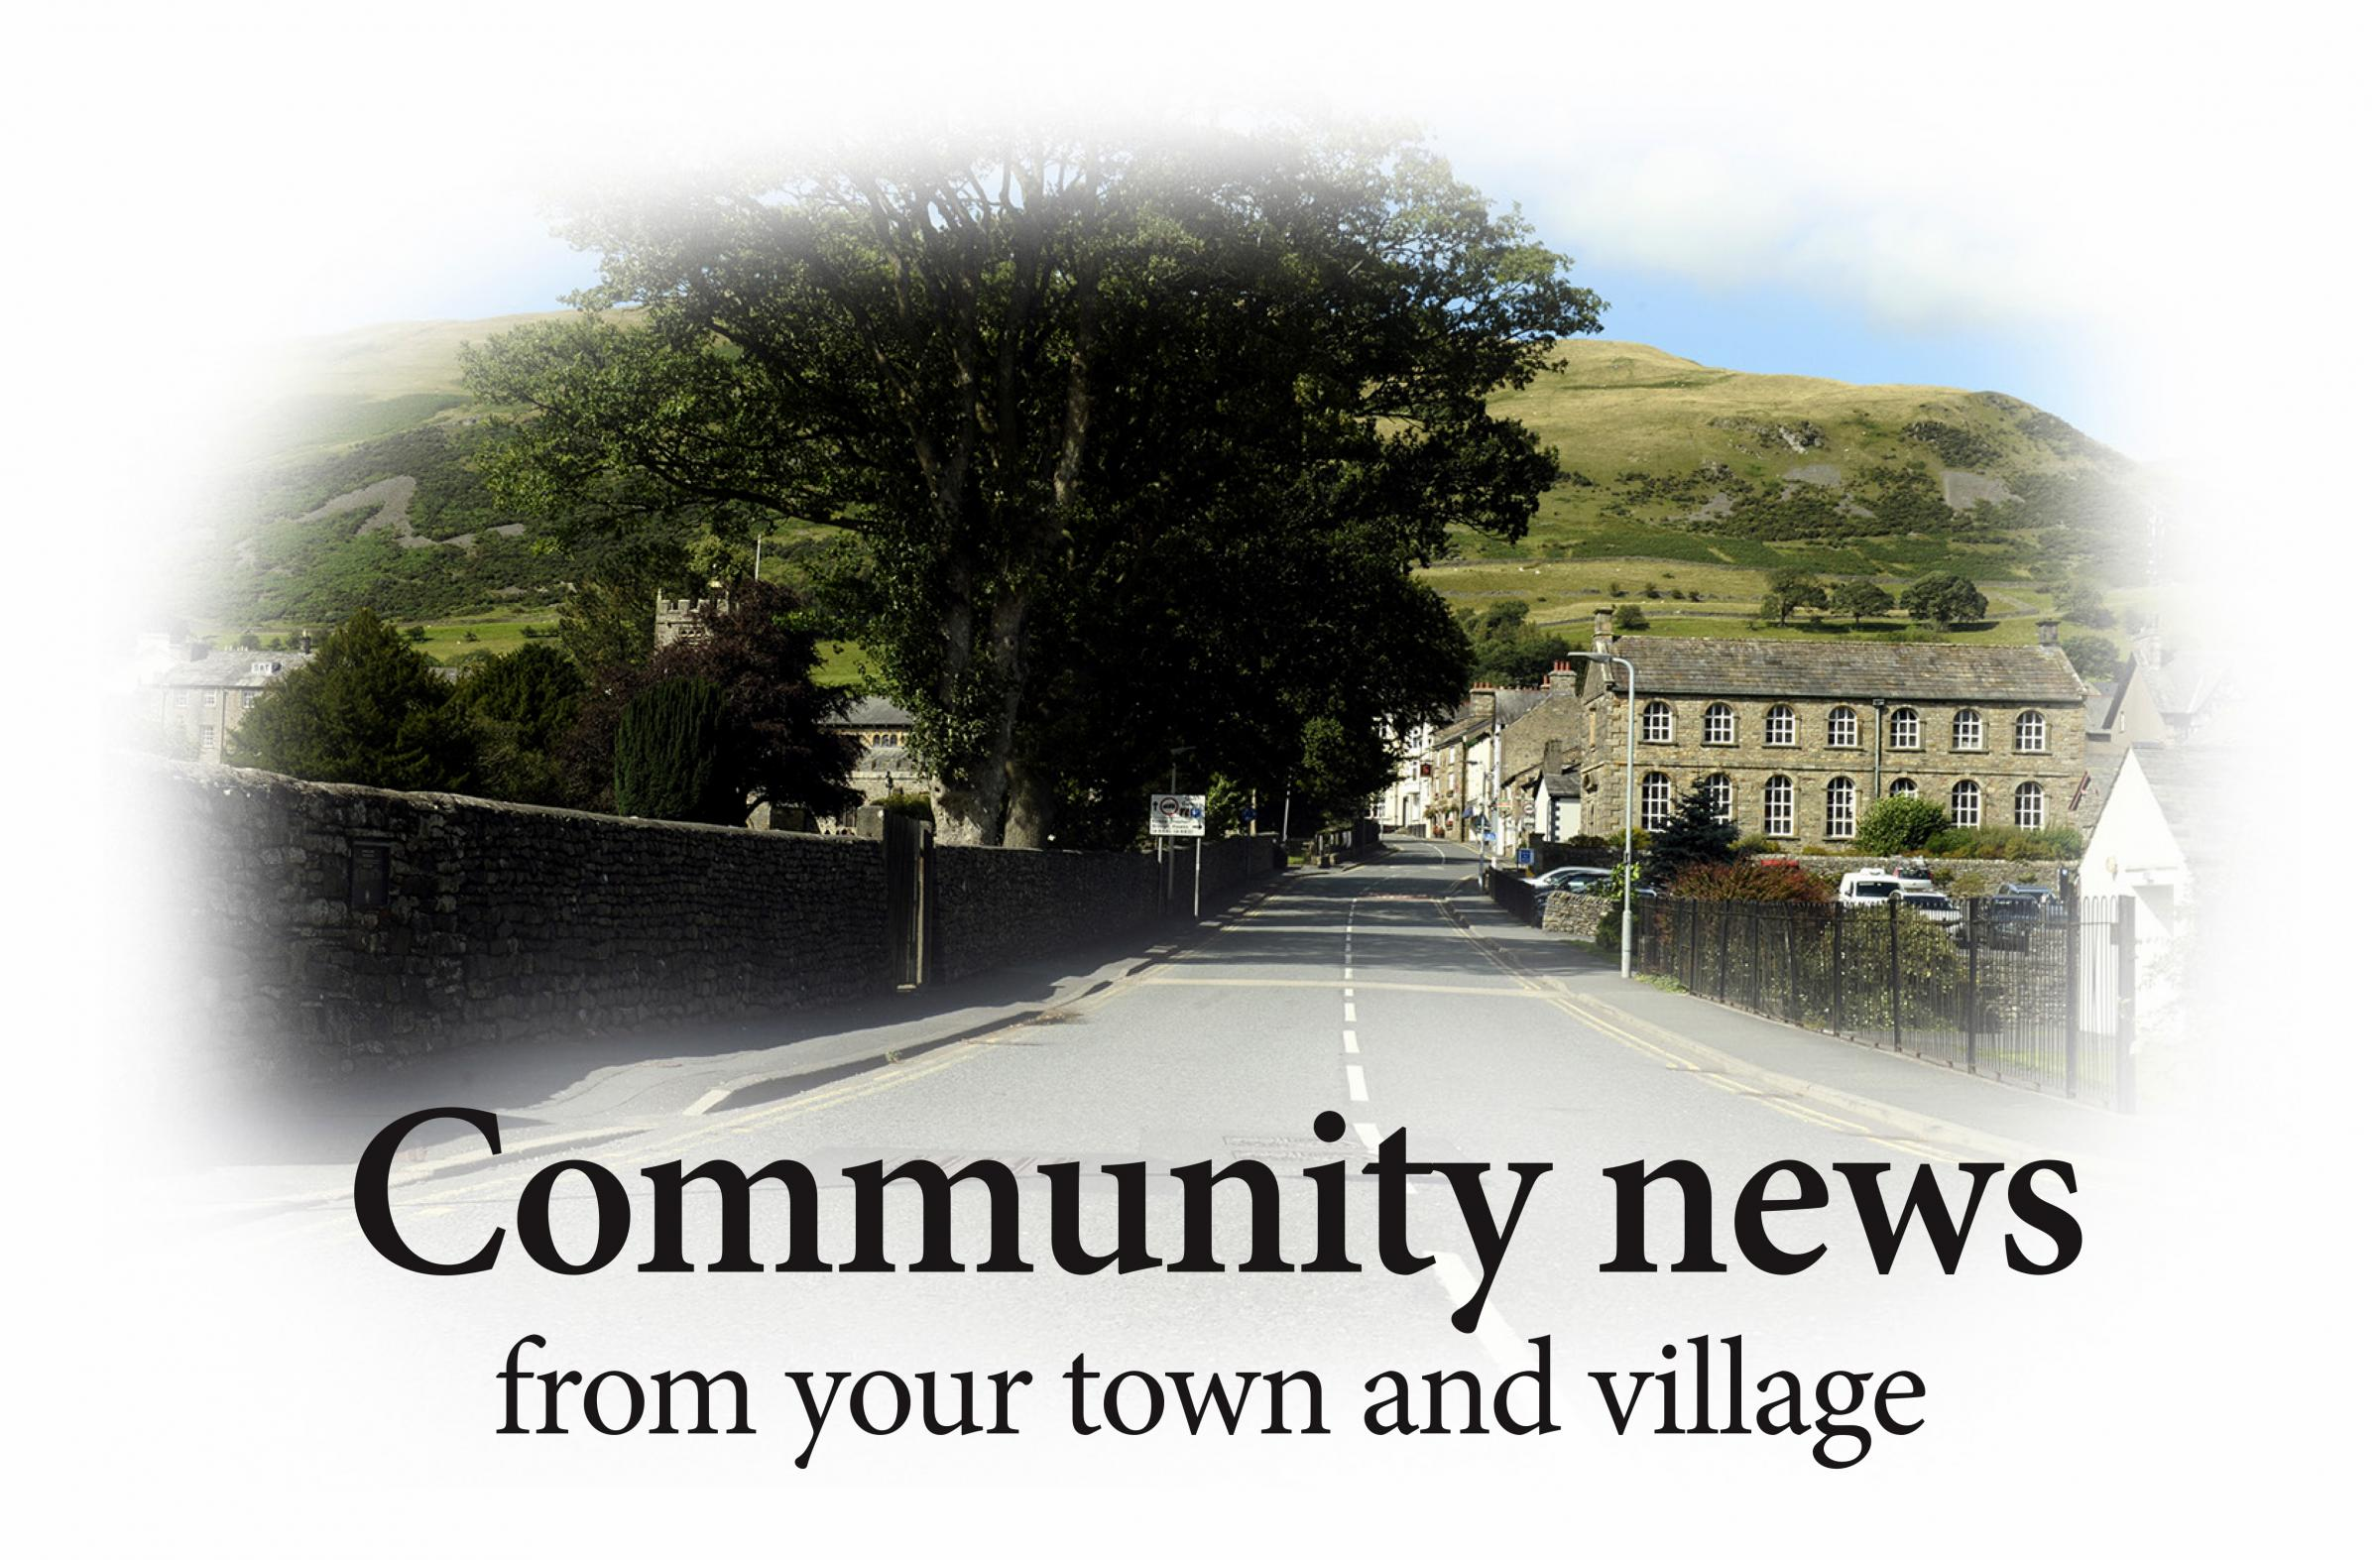 All your local news from Endmoor, Old Hutton and Burton-in-Kendal